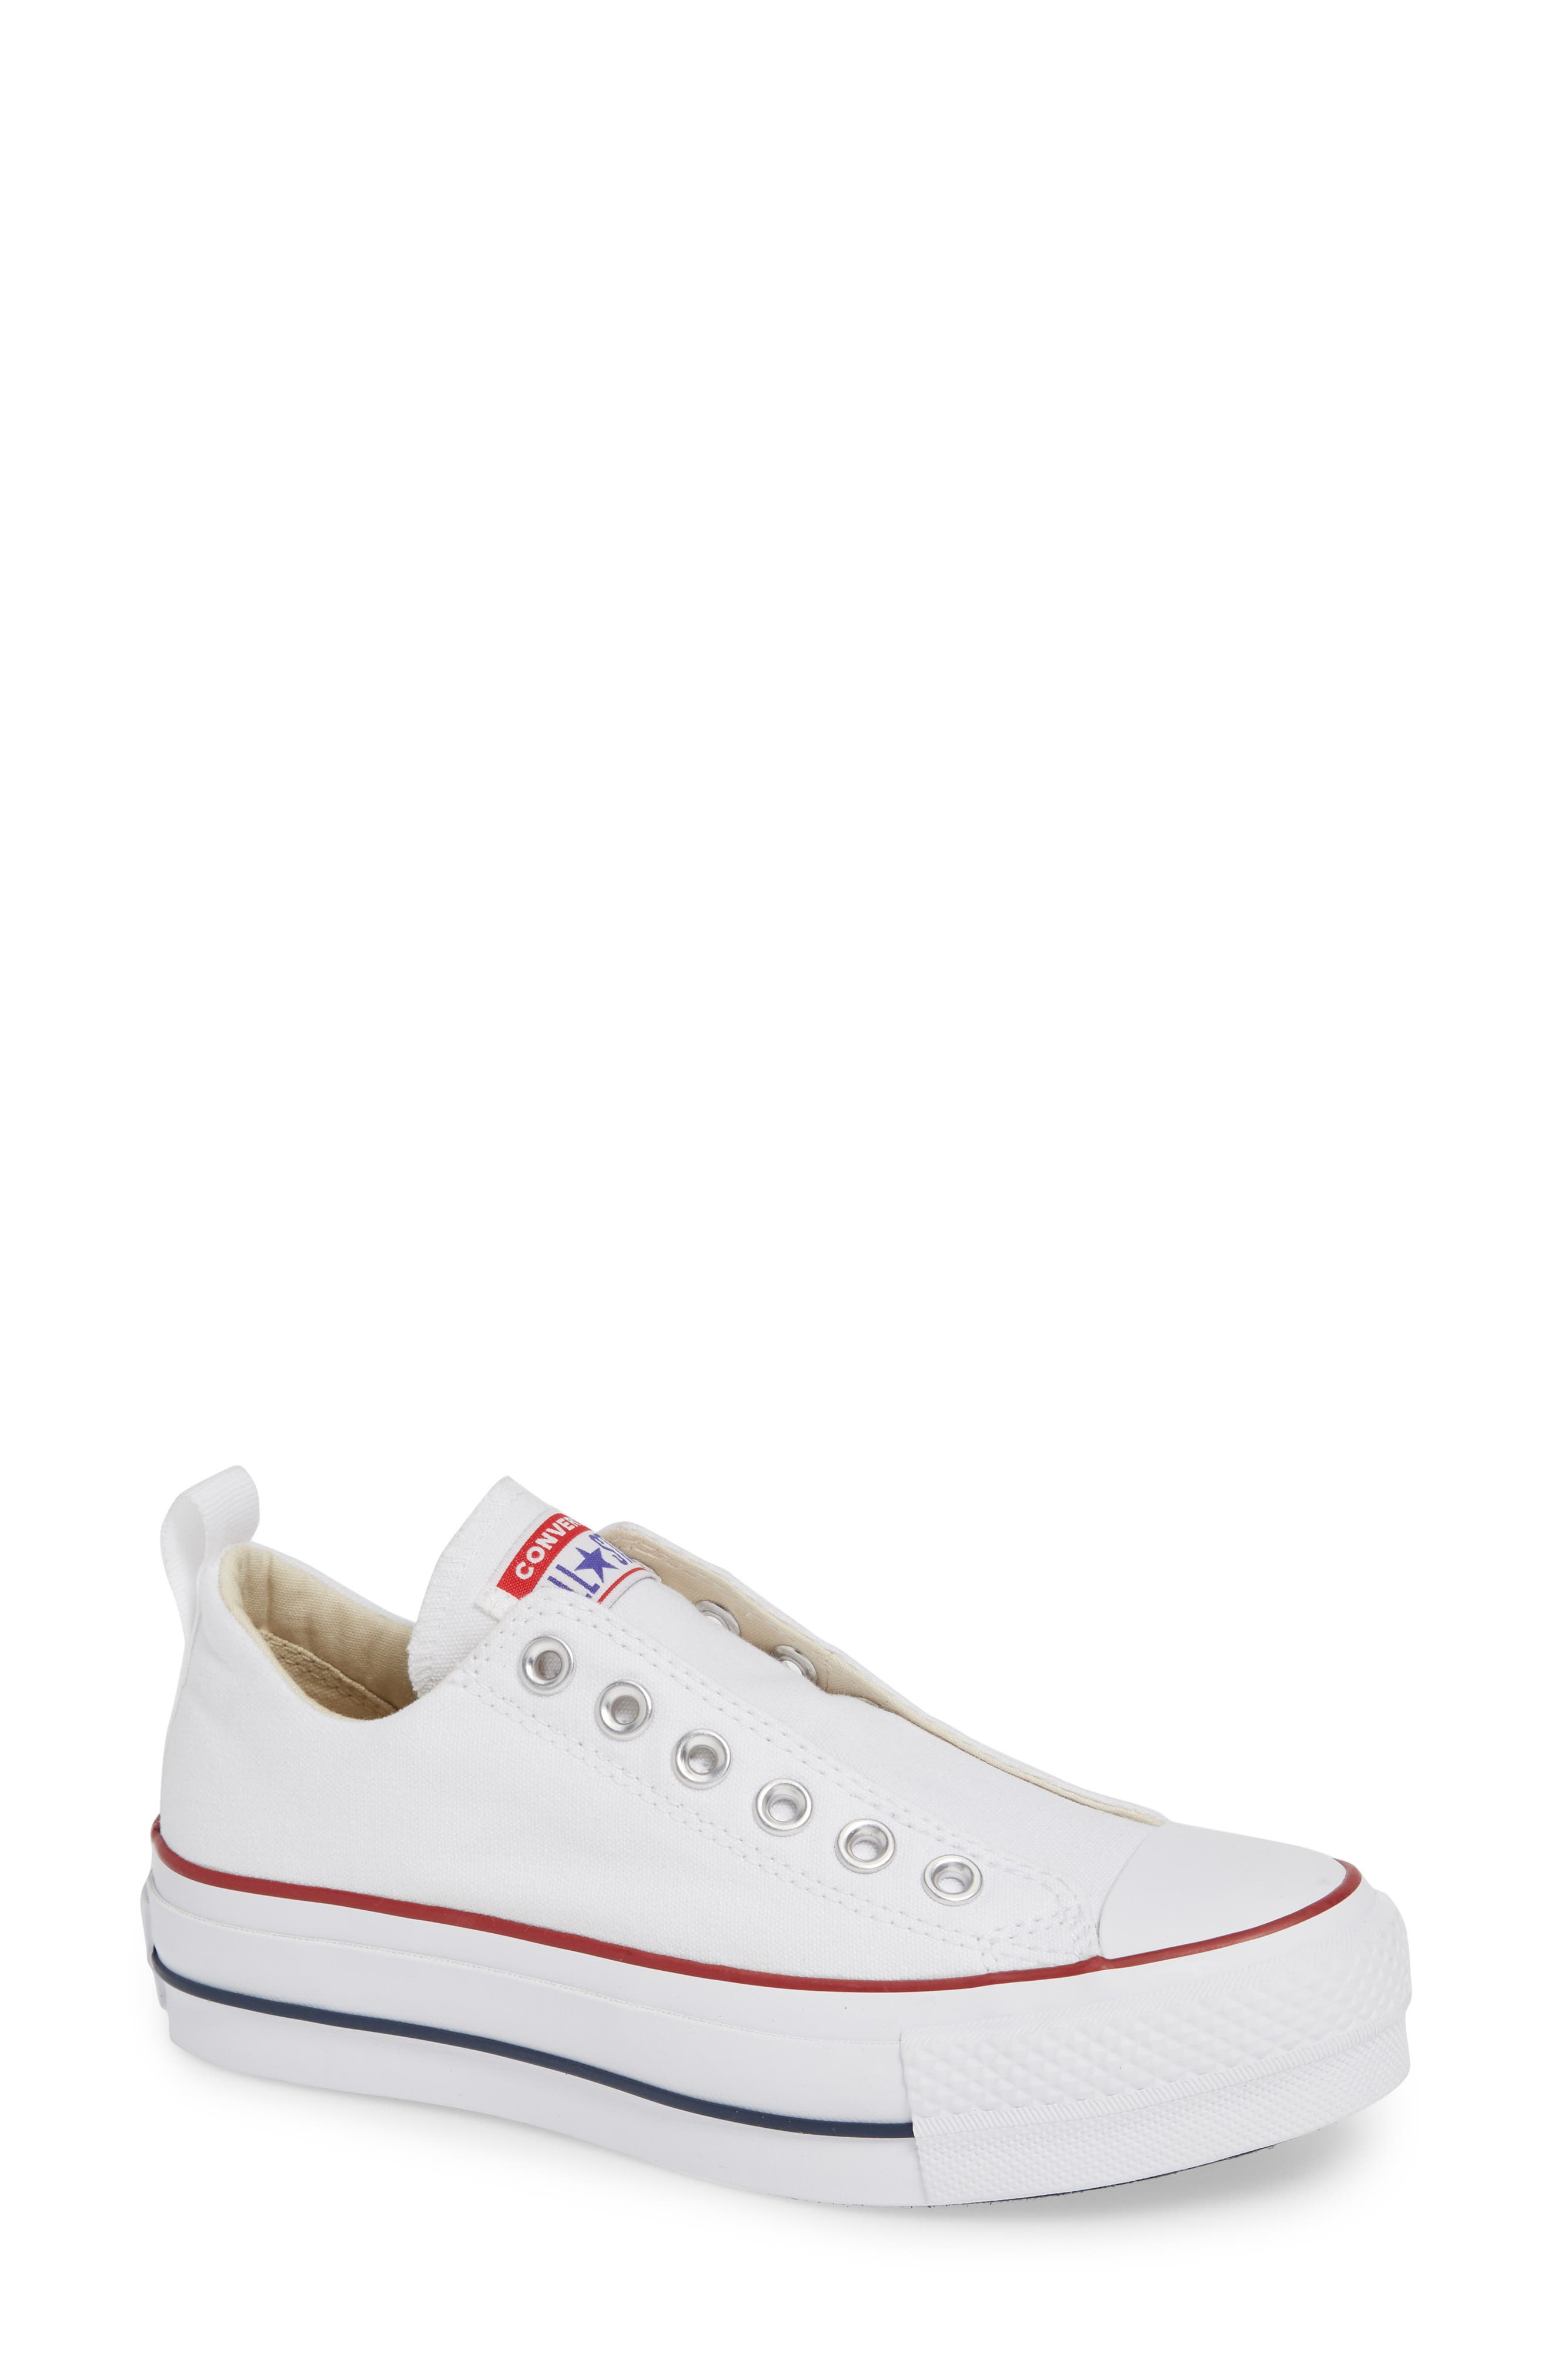 Converse Chuck Taylor All Star Low Top Sneaker, White